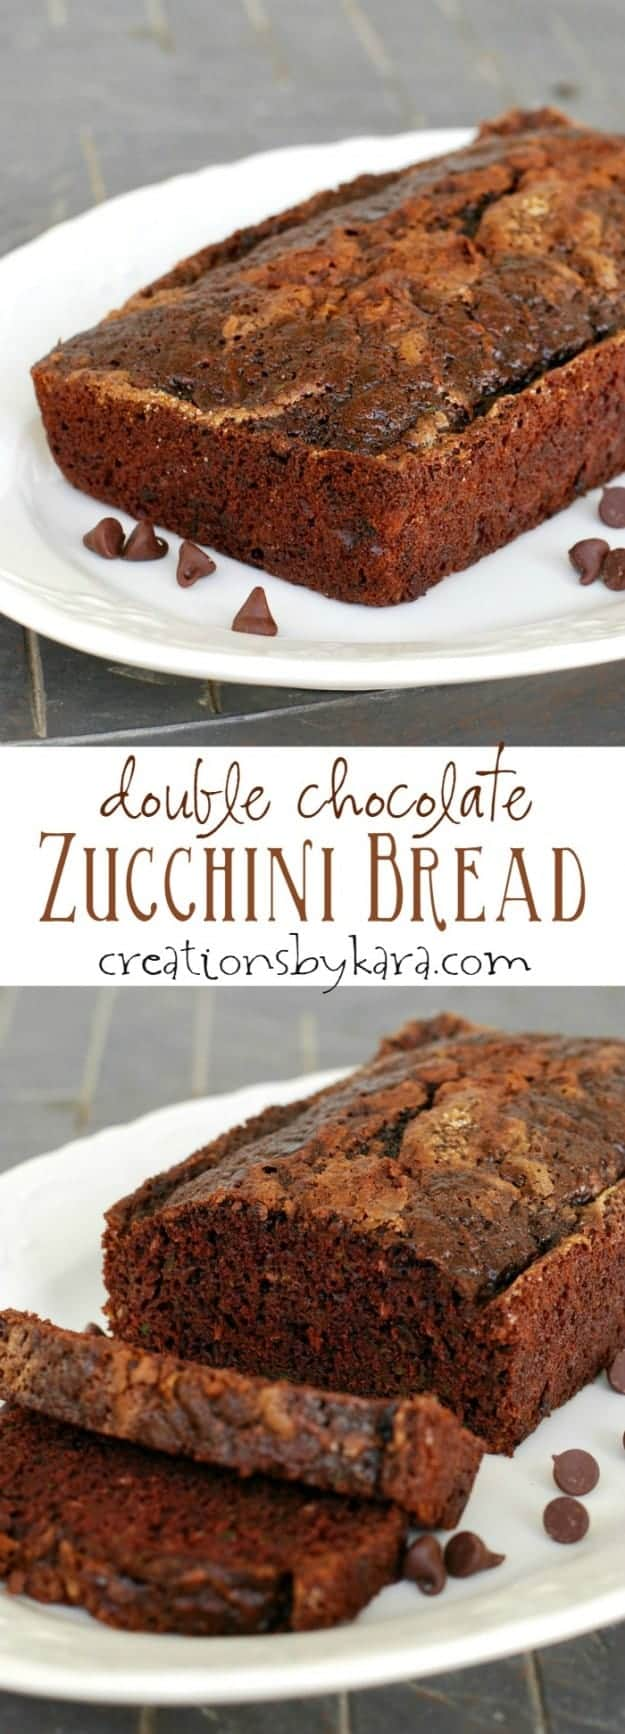 With chocolate chips and a cinnamon sugar topping, this Chocolate Zucchini Bread is unbeatable!